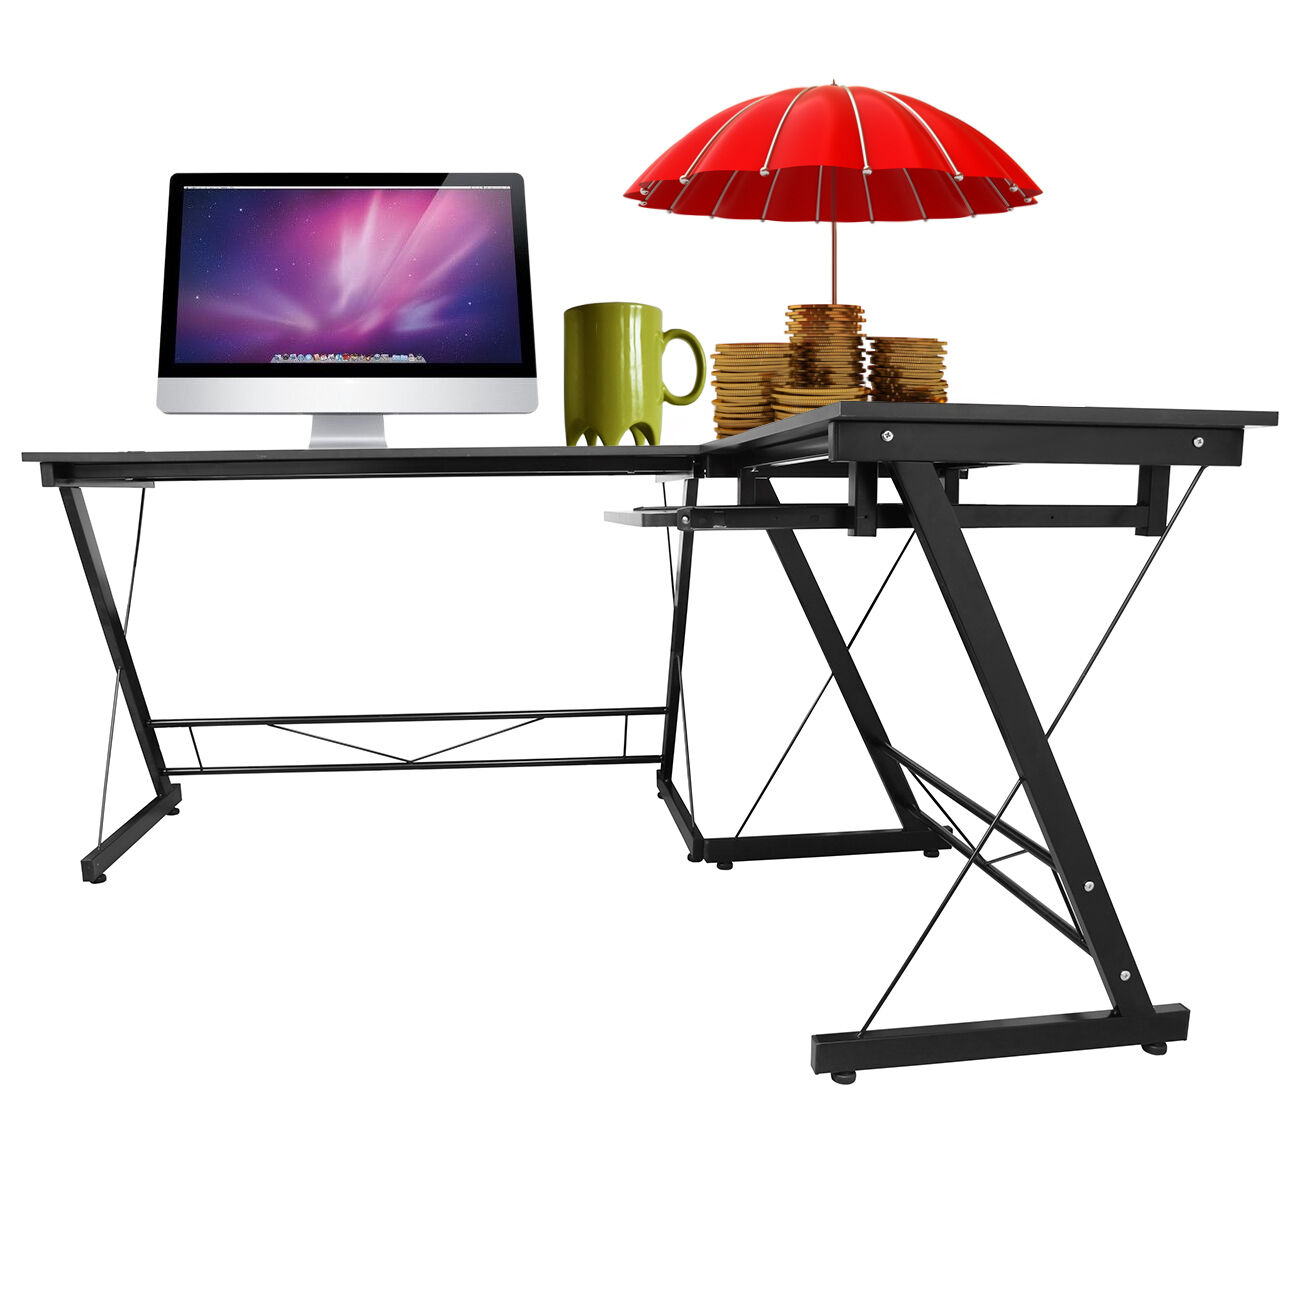 l forme coin pour ordinateur accueil bureau pc portable study table workstation eur 65 00. Black Bedroom Furniture Sets. Home Design Ideas